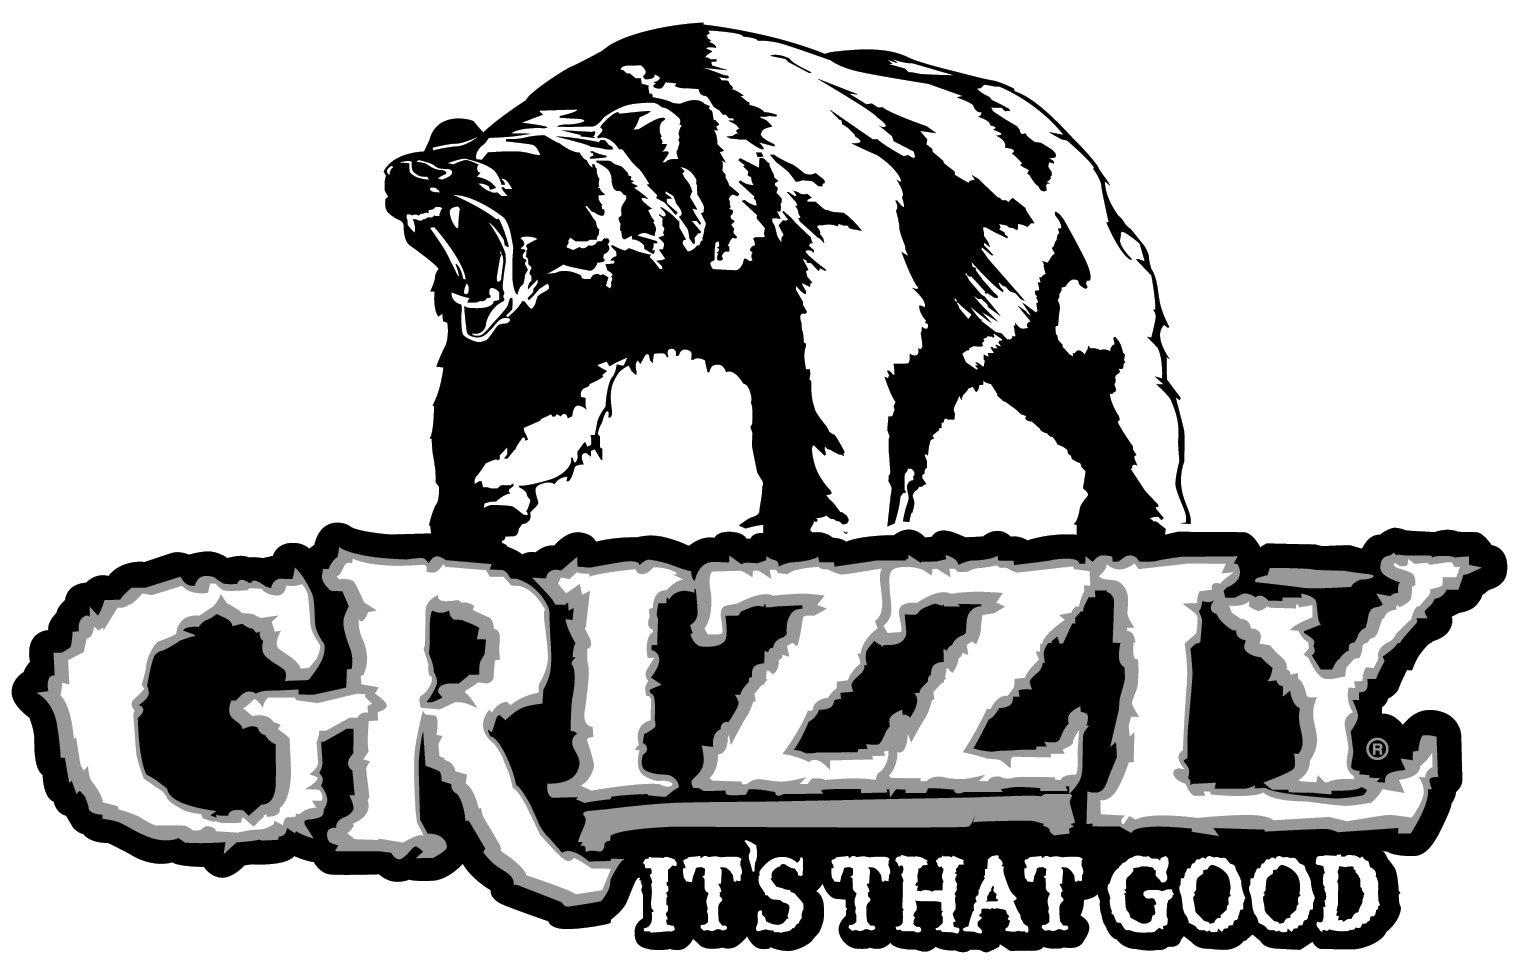 Grizzly drawing symbol. Tobacco logos